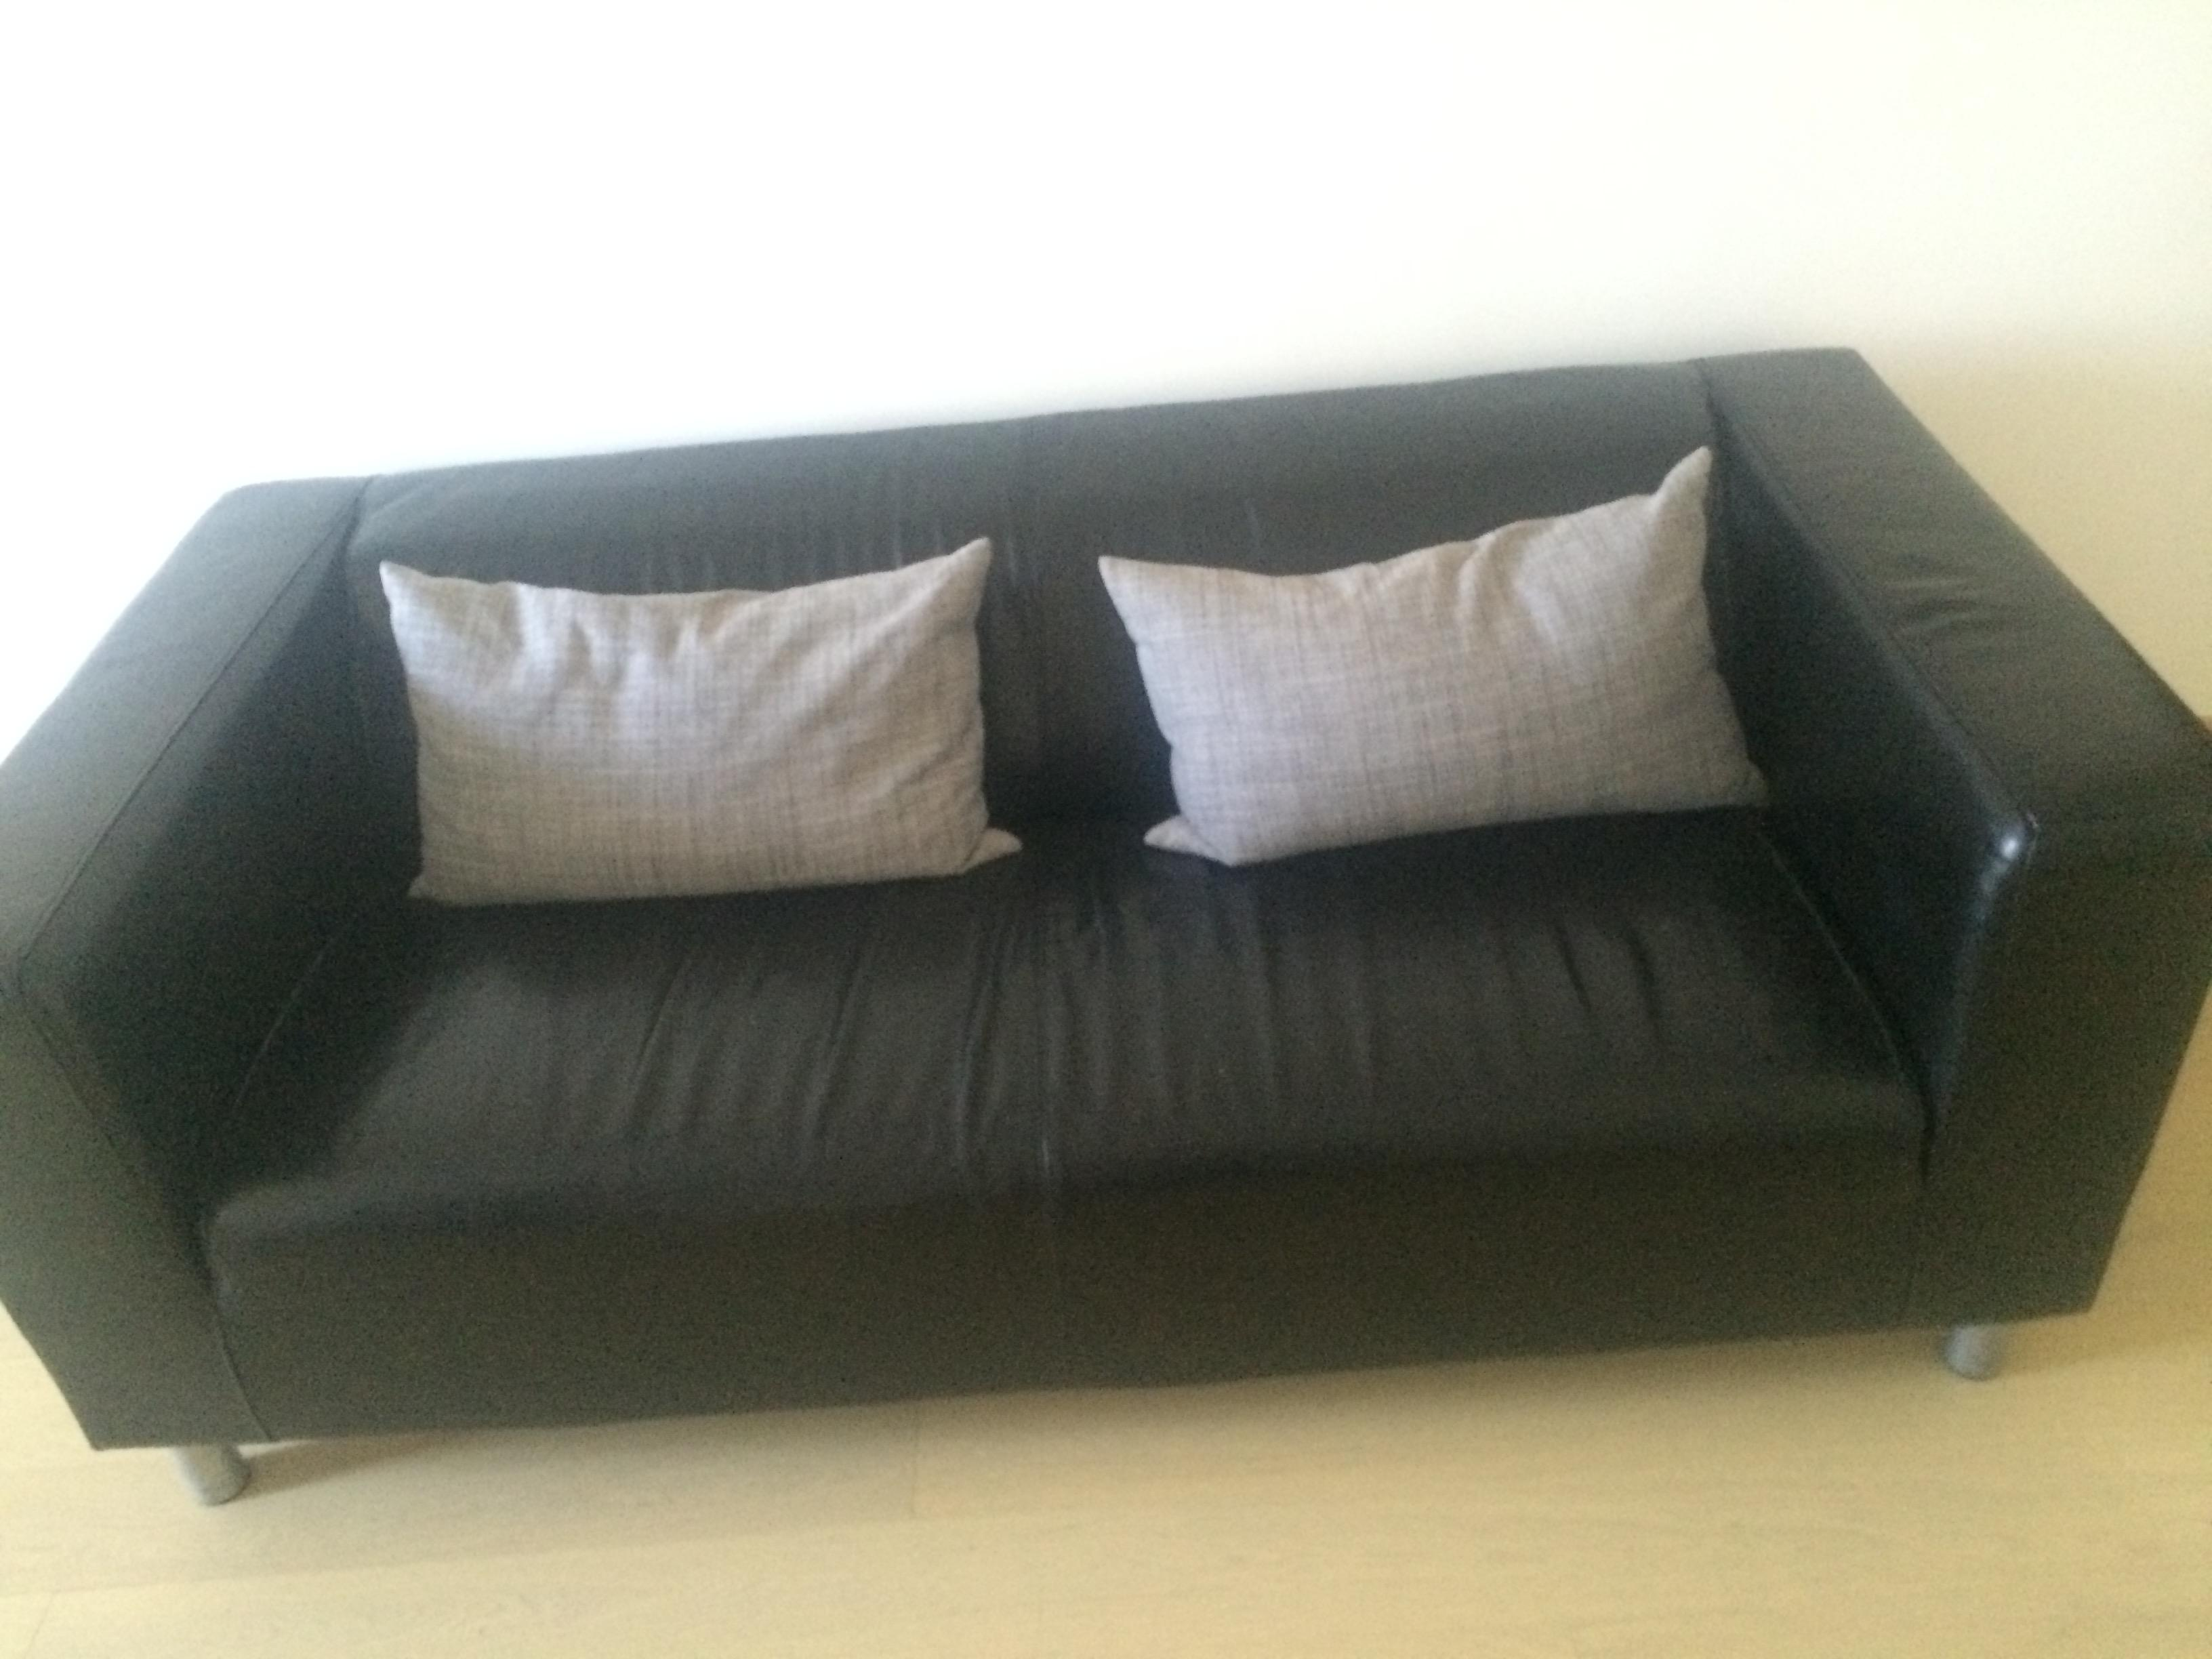 Surprising Leather Sofa For Sale Good As New Ikea Klippan Machost Co Dining Chair Design Ideas Machostcouk